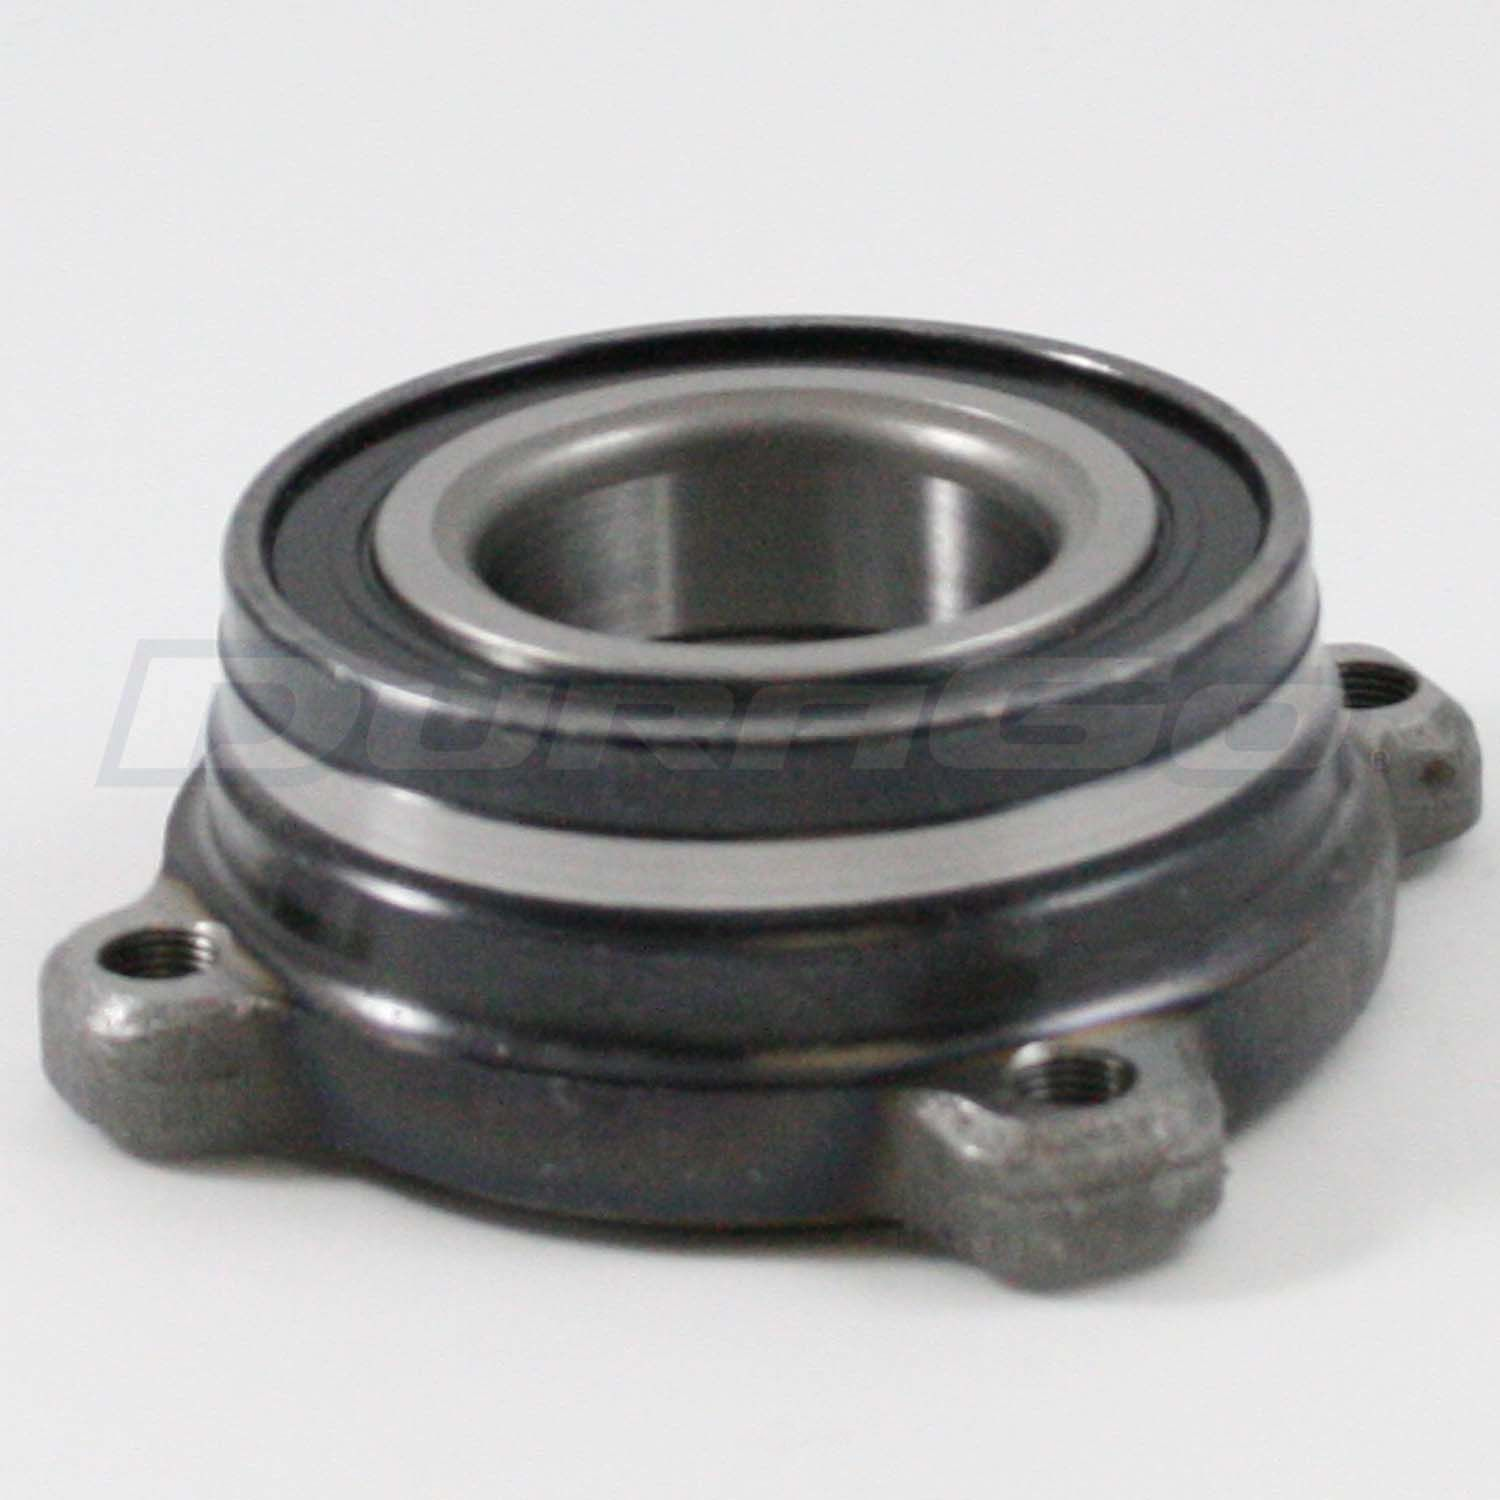 DURAGO - Wheel Bearing Assembly - D48 295-12225